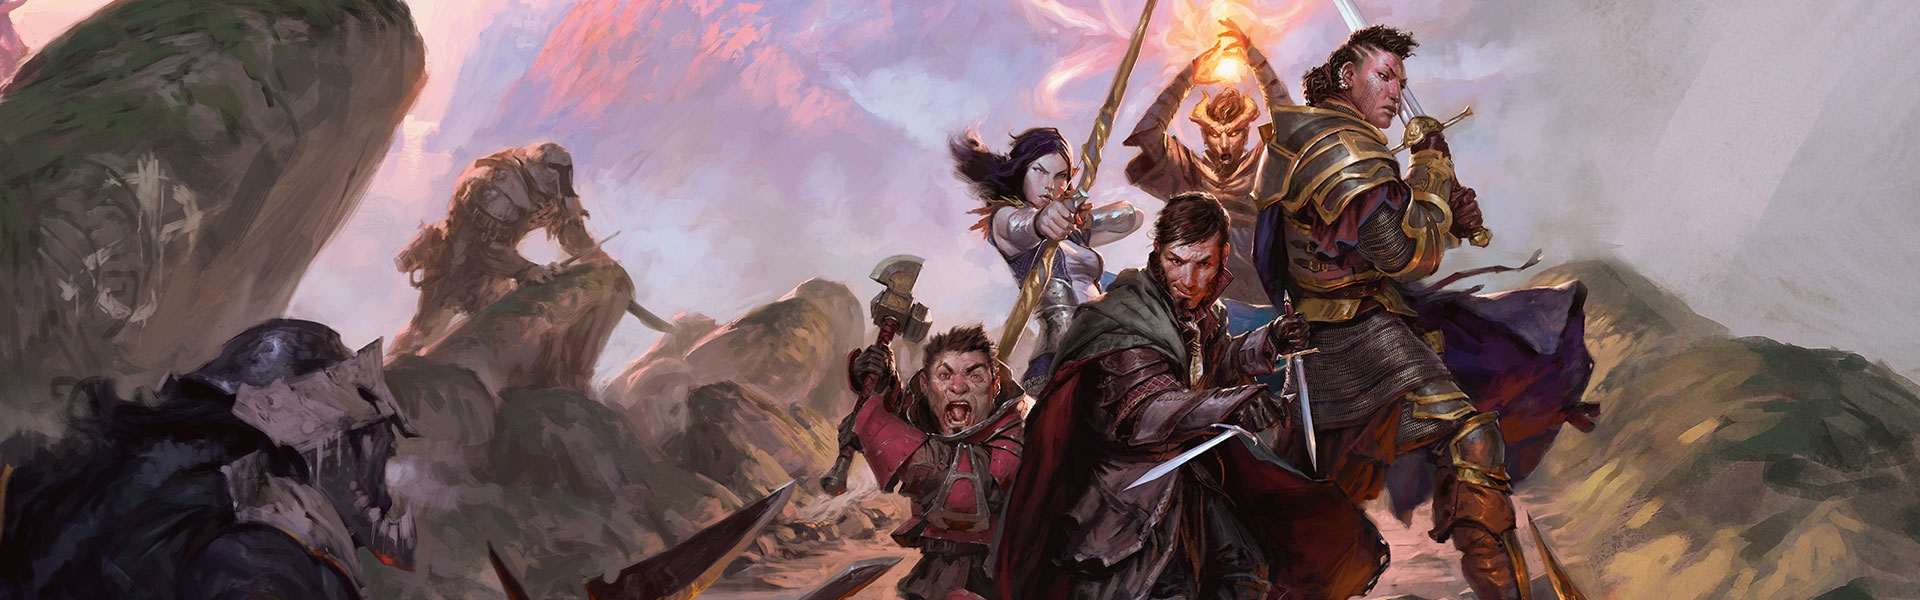 sword-coast-adventurers-guide-dnd-5th-edition-banner